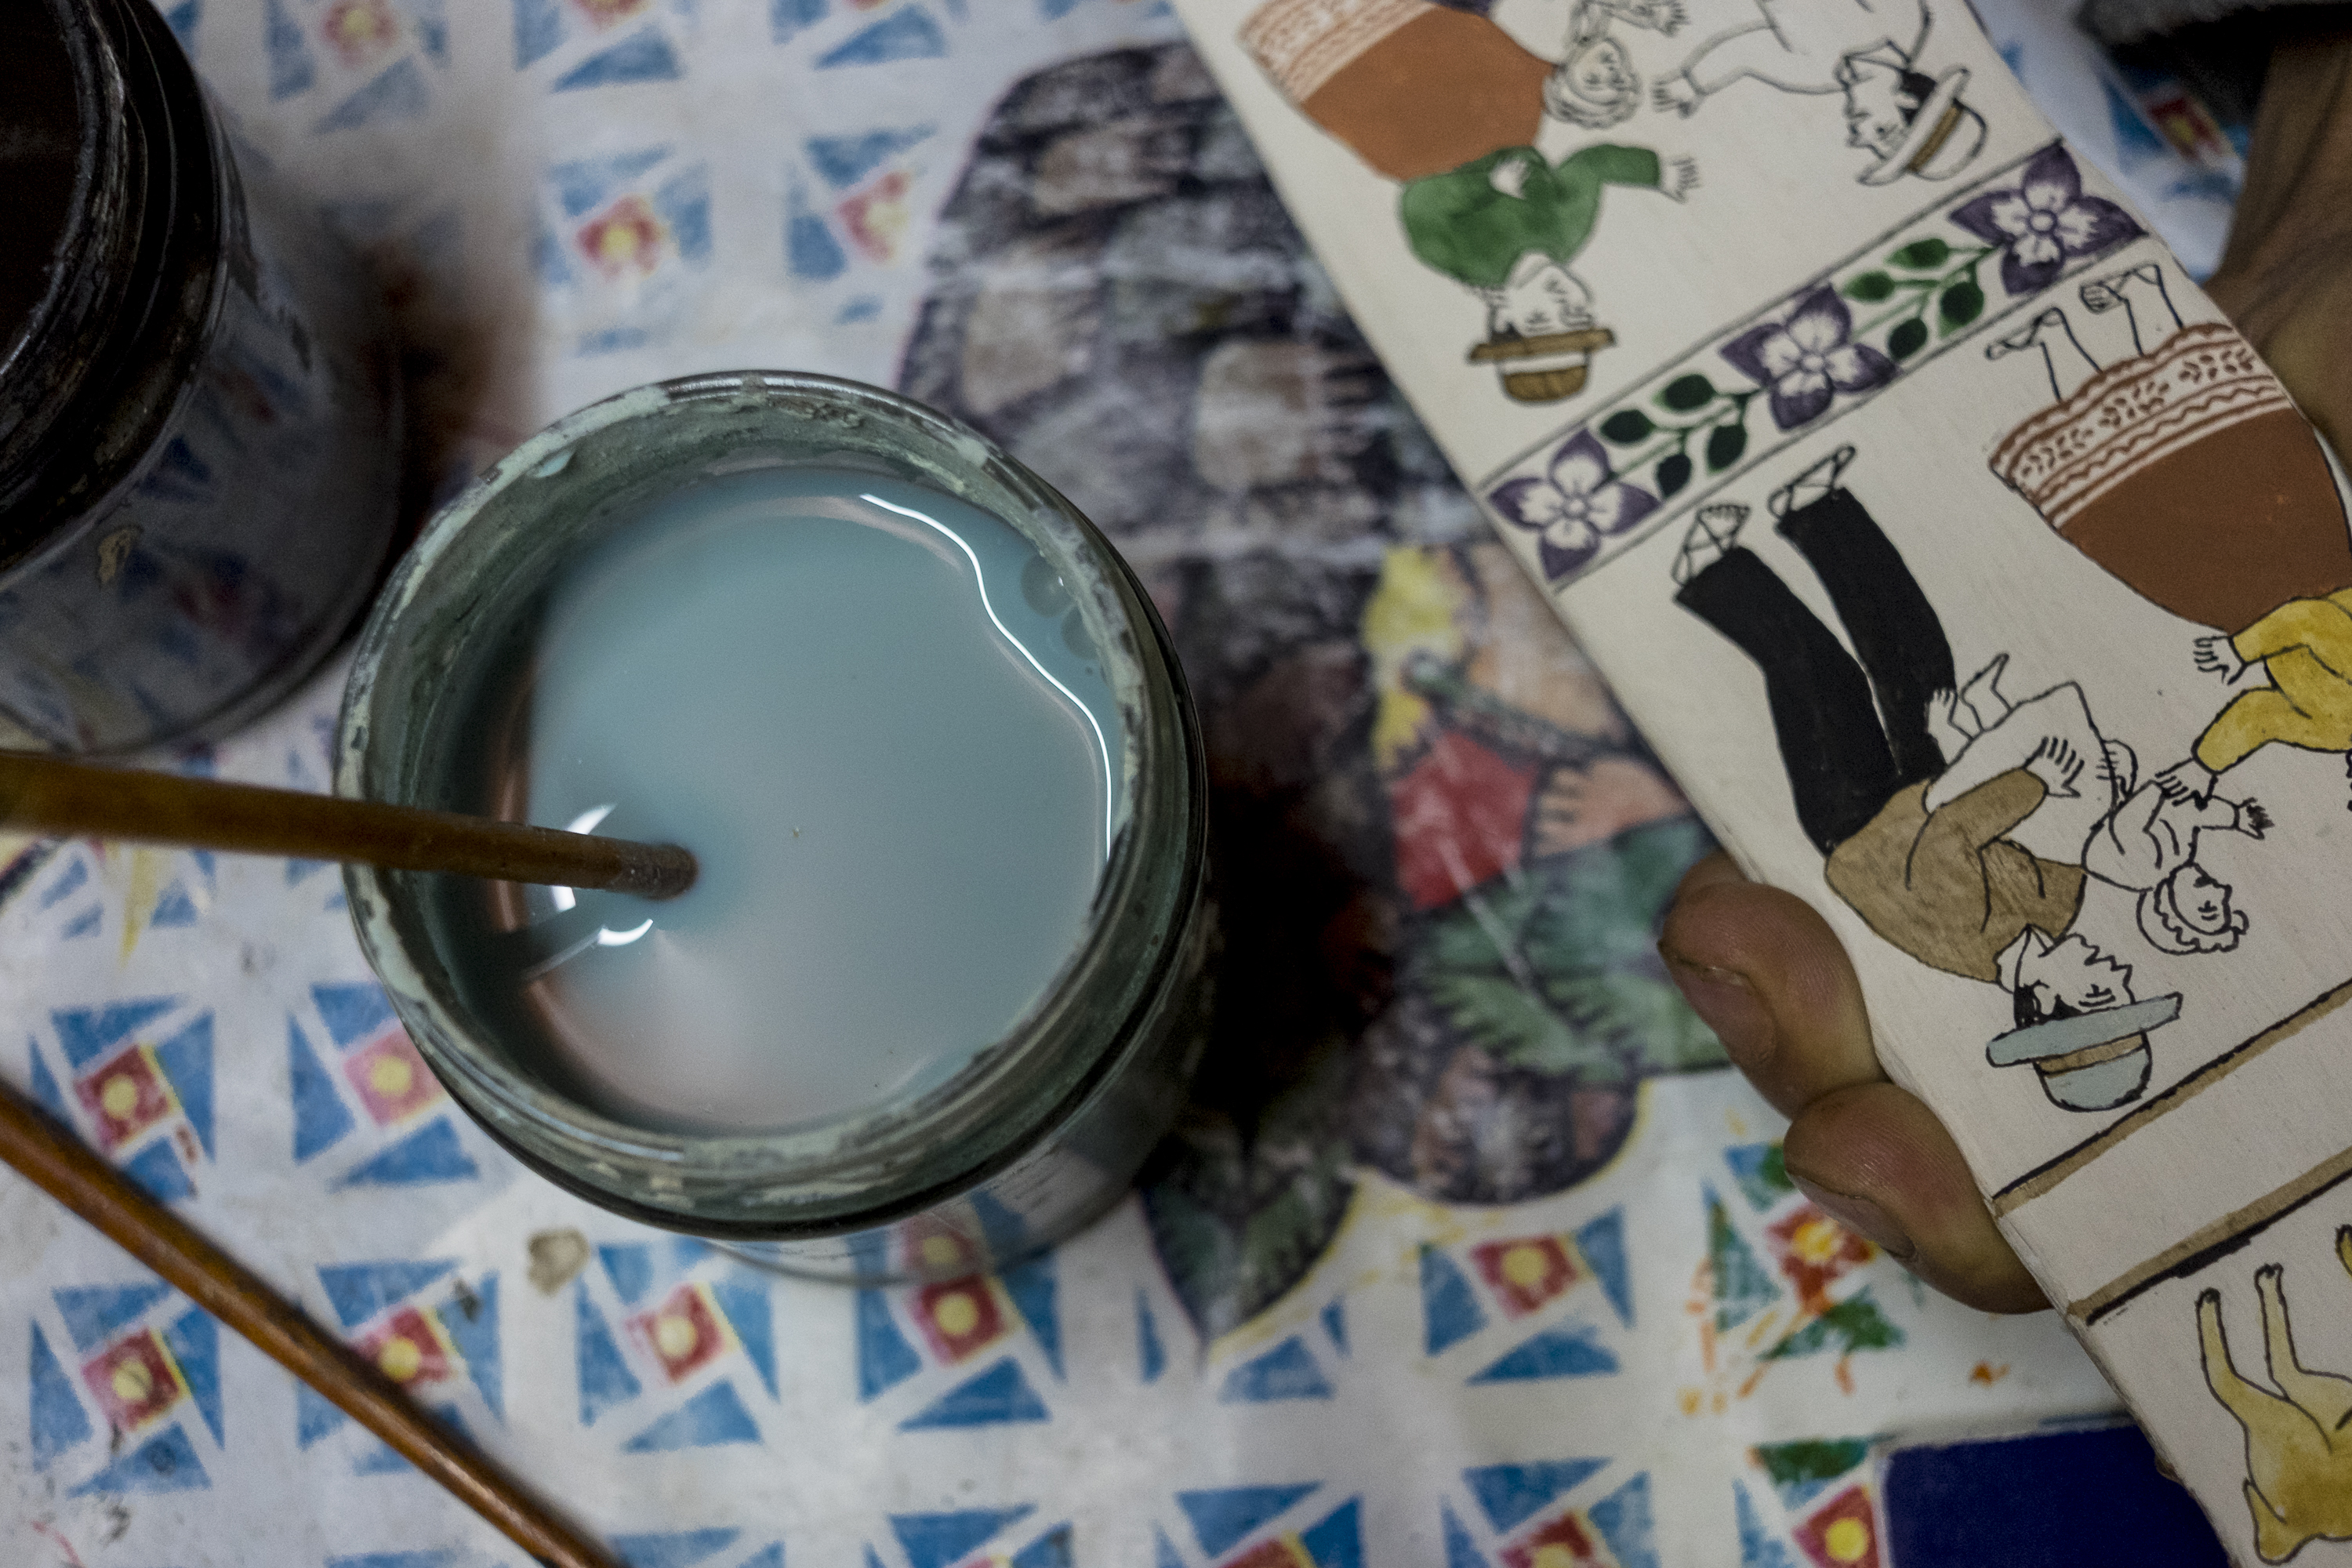 Paint for the tablas in Porfirio Ramos's workshop.